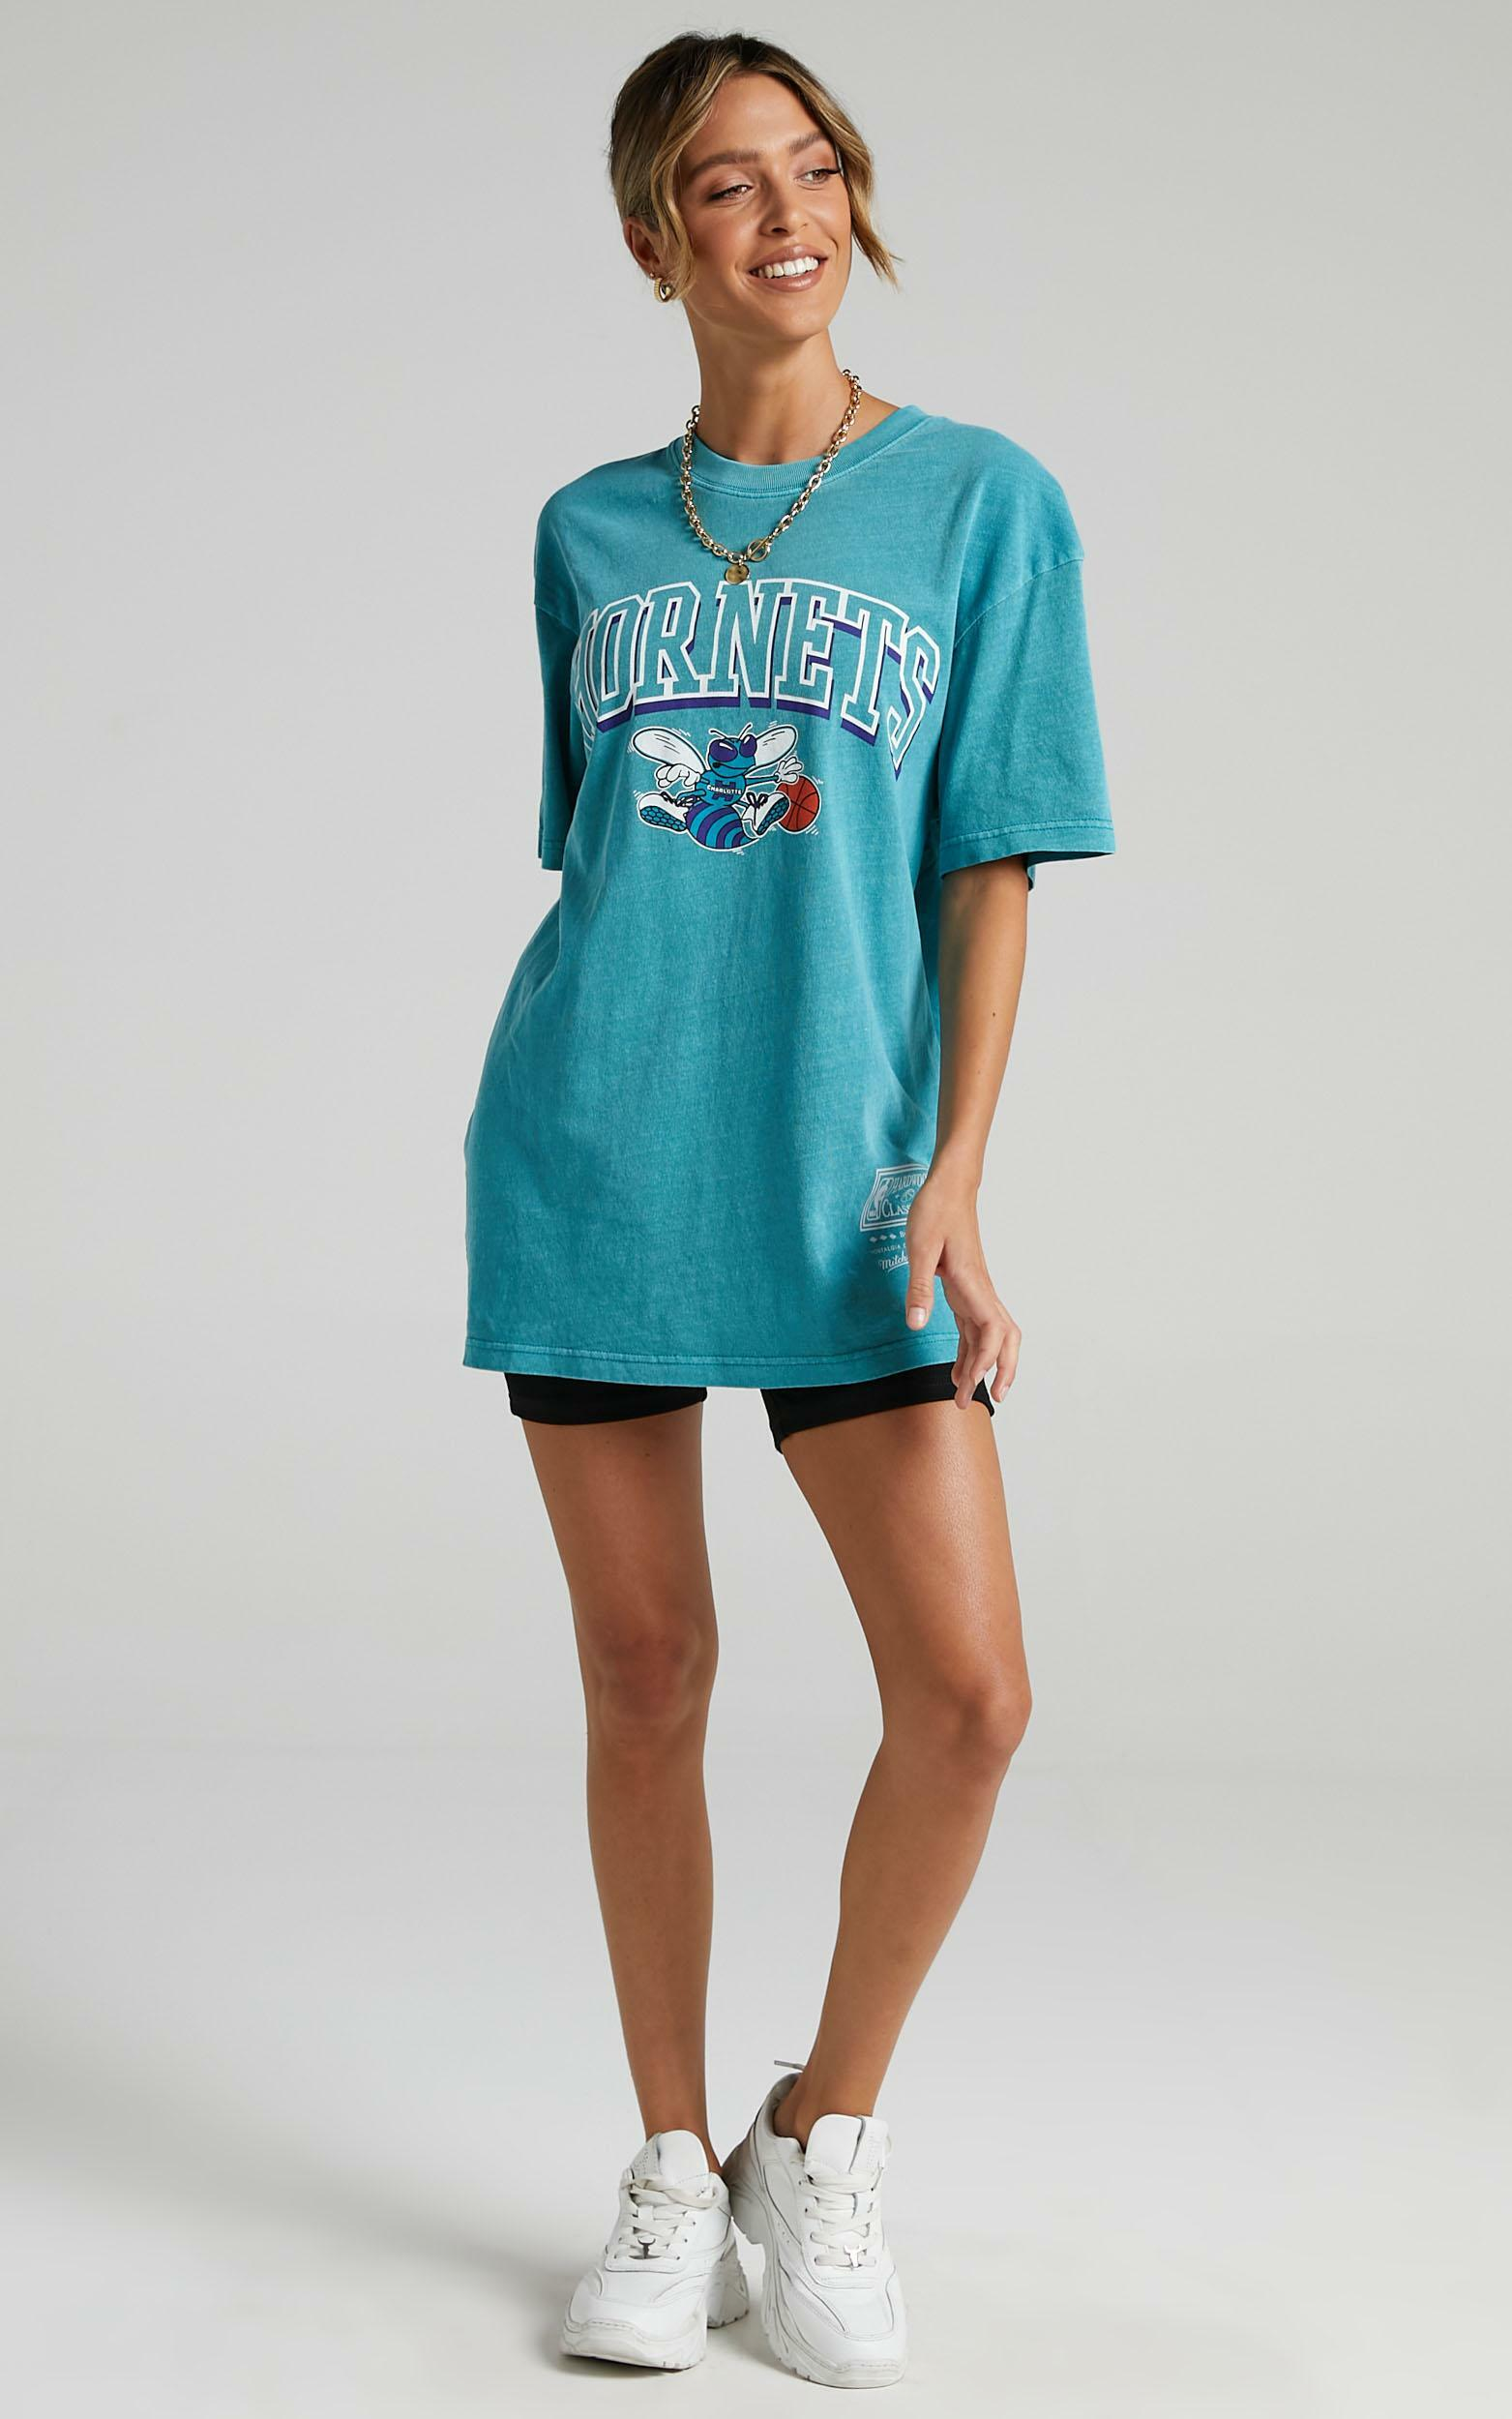 Mitchell & Ness - Vintage Keyline Logo Tee Horns in Faded Aqua - XS, BLU1, hi-res image number null